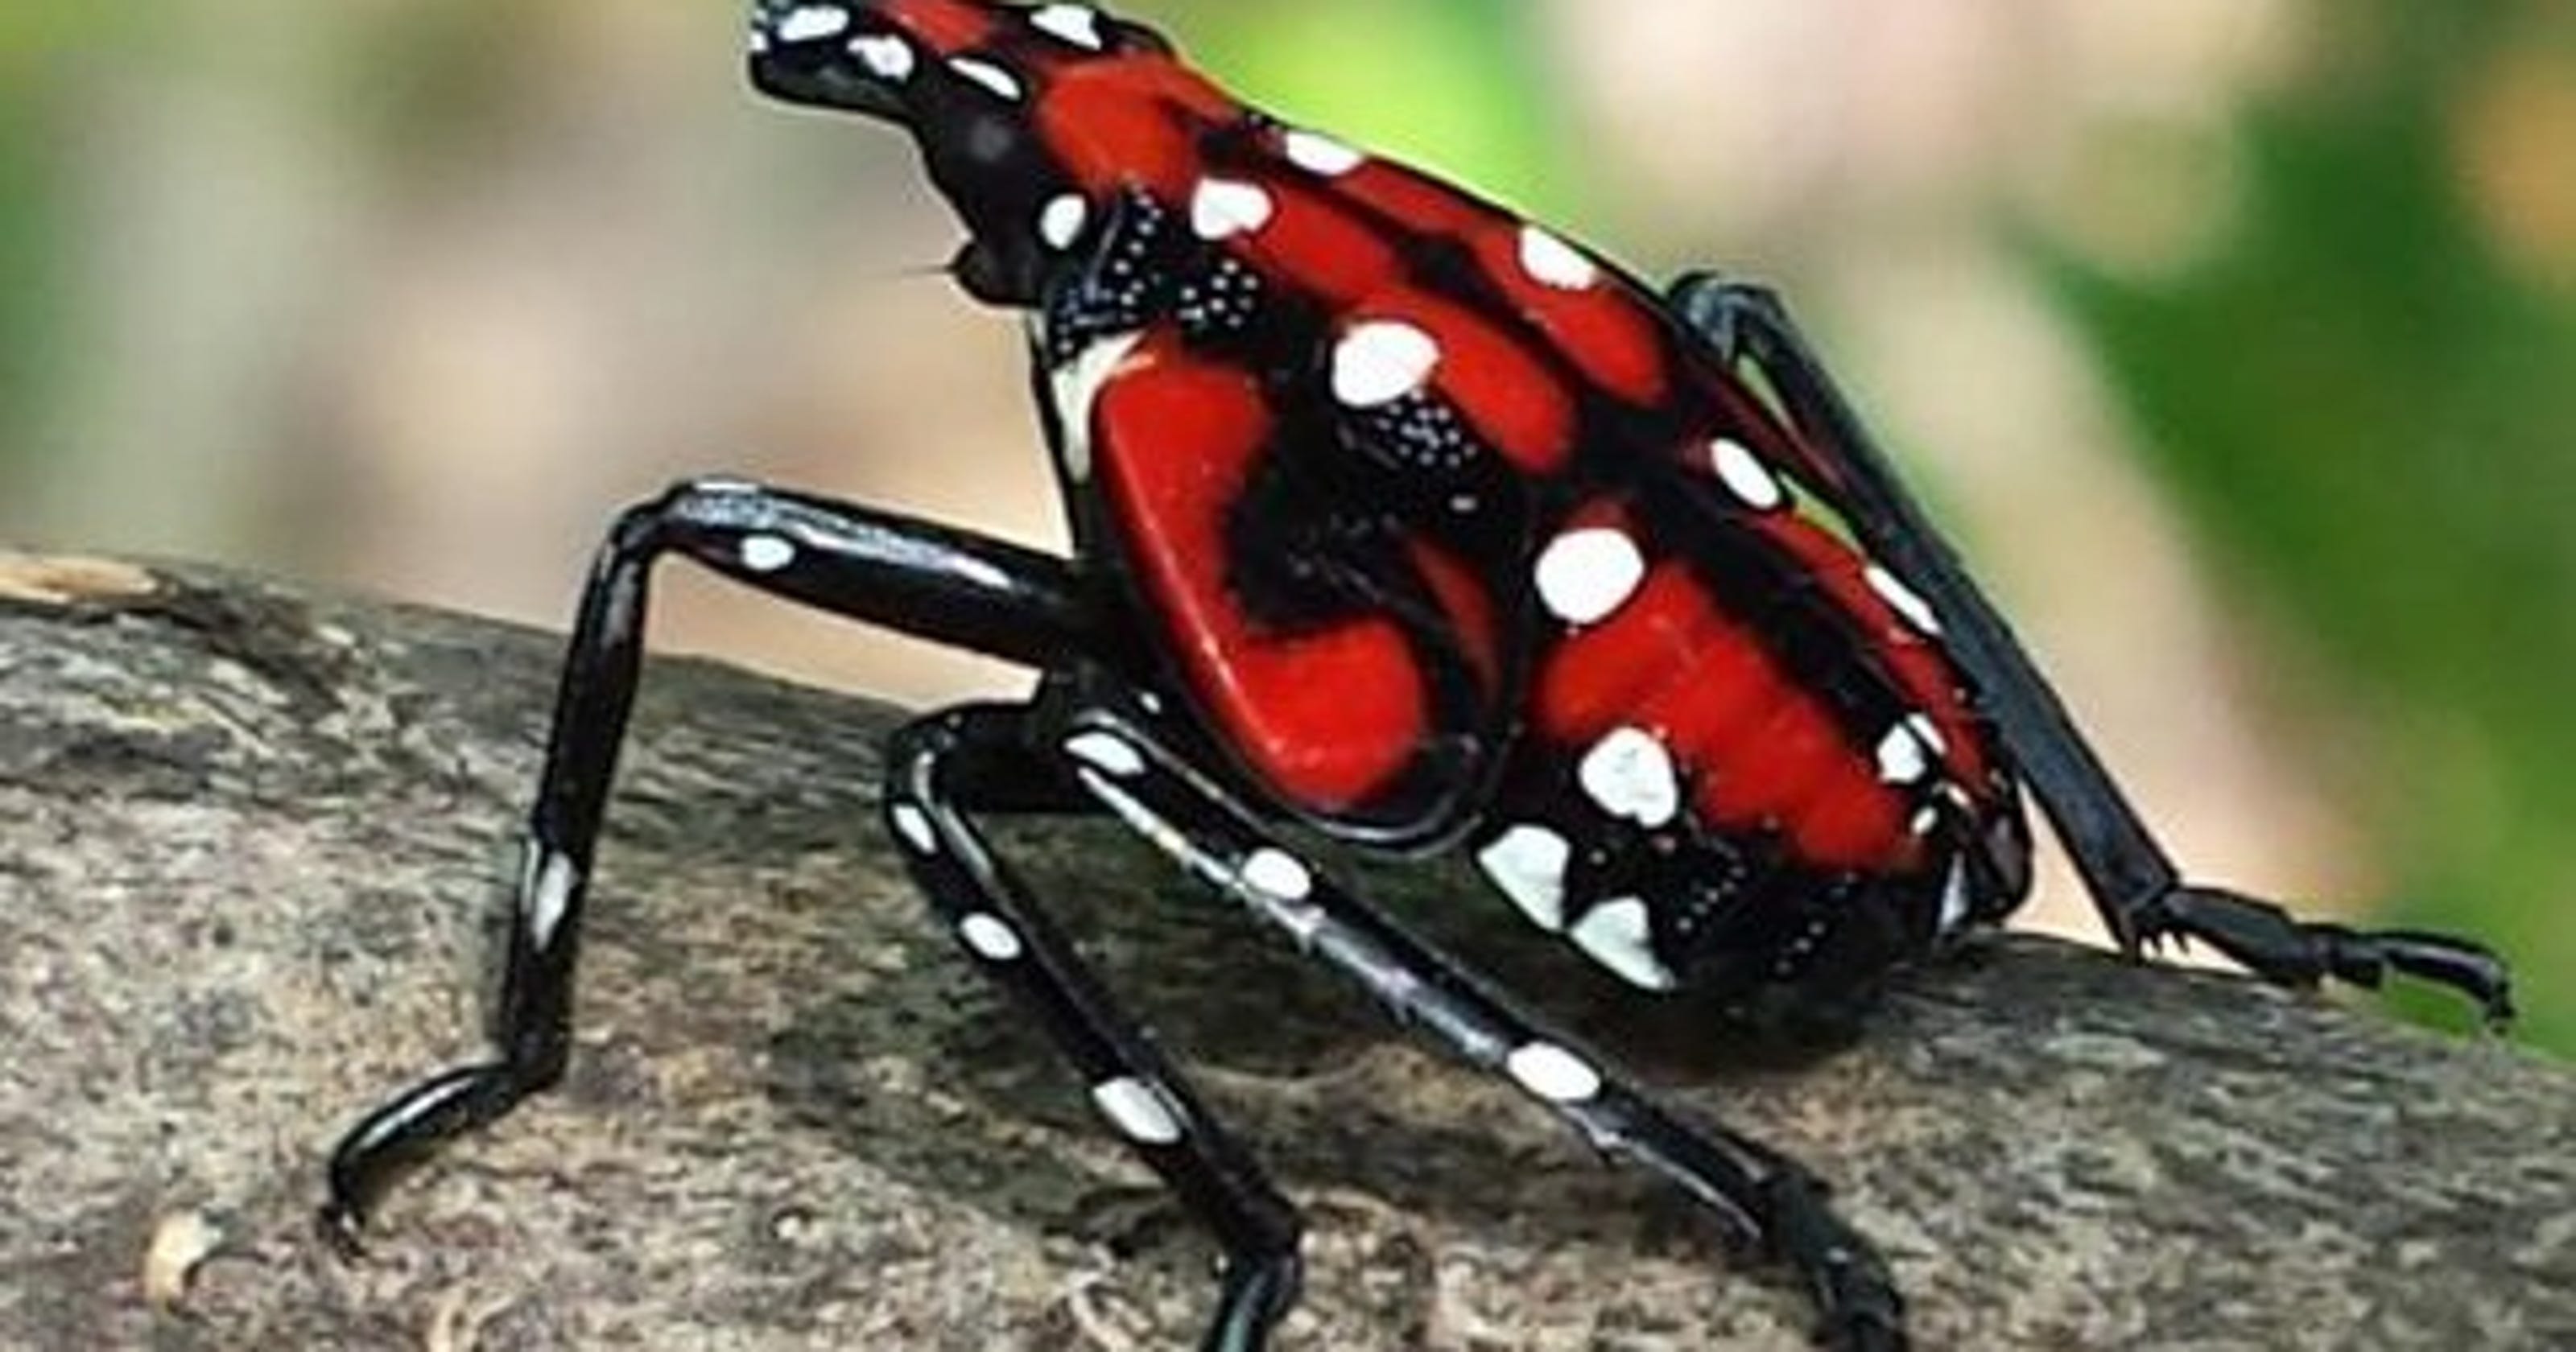 Bugs In Christmas Trees.Spotted Lanternfly Infests Christmas Trees And Could Lay